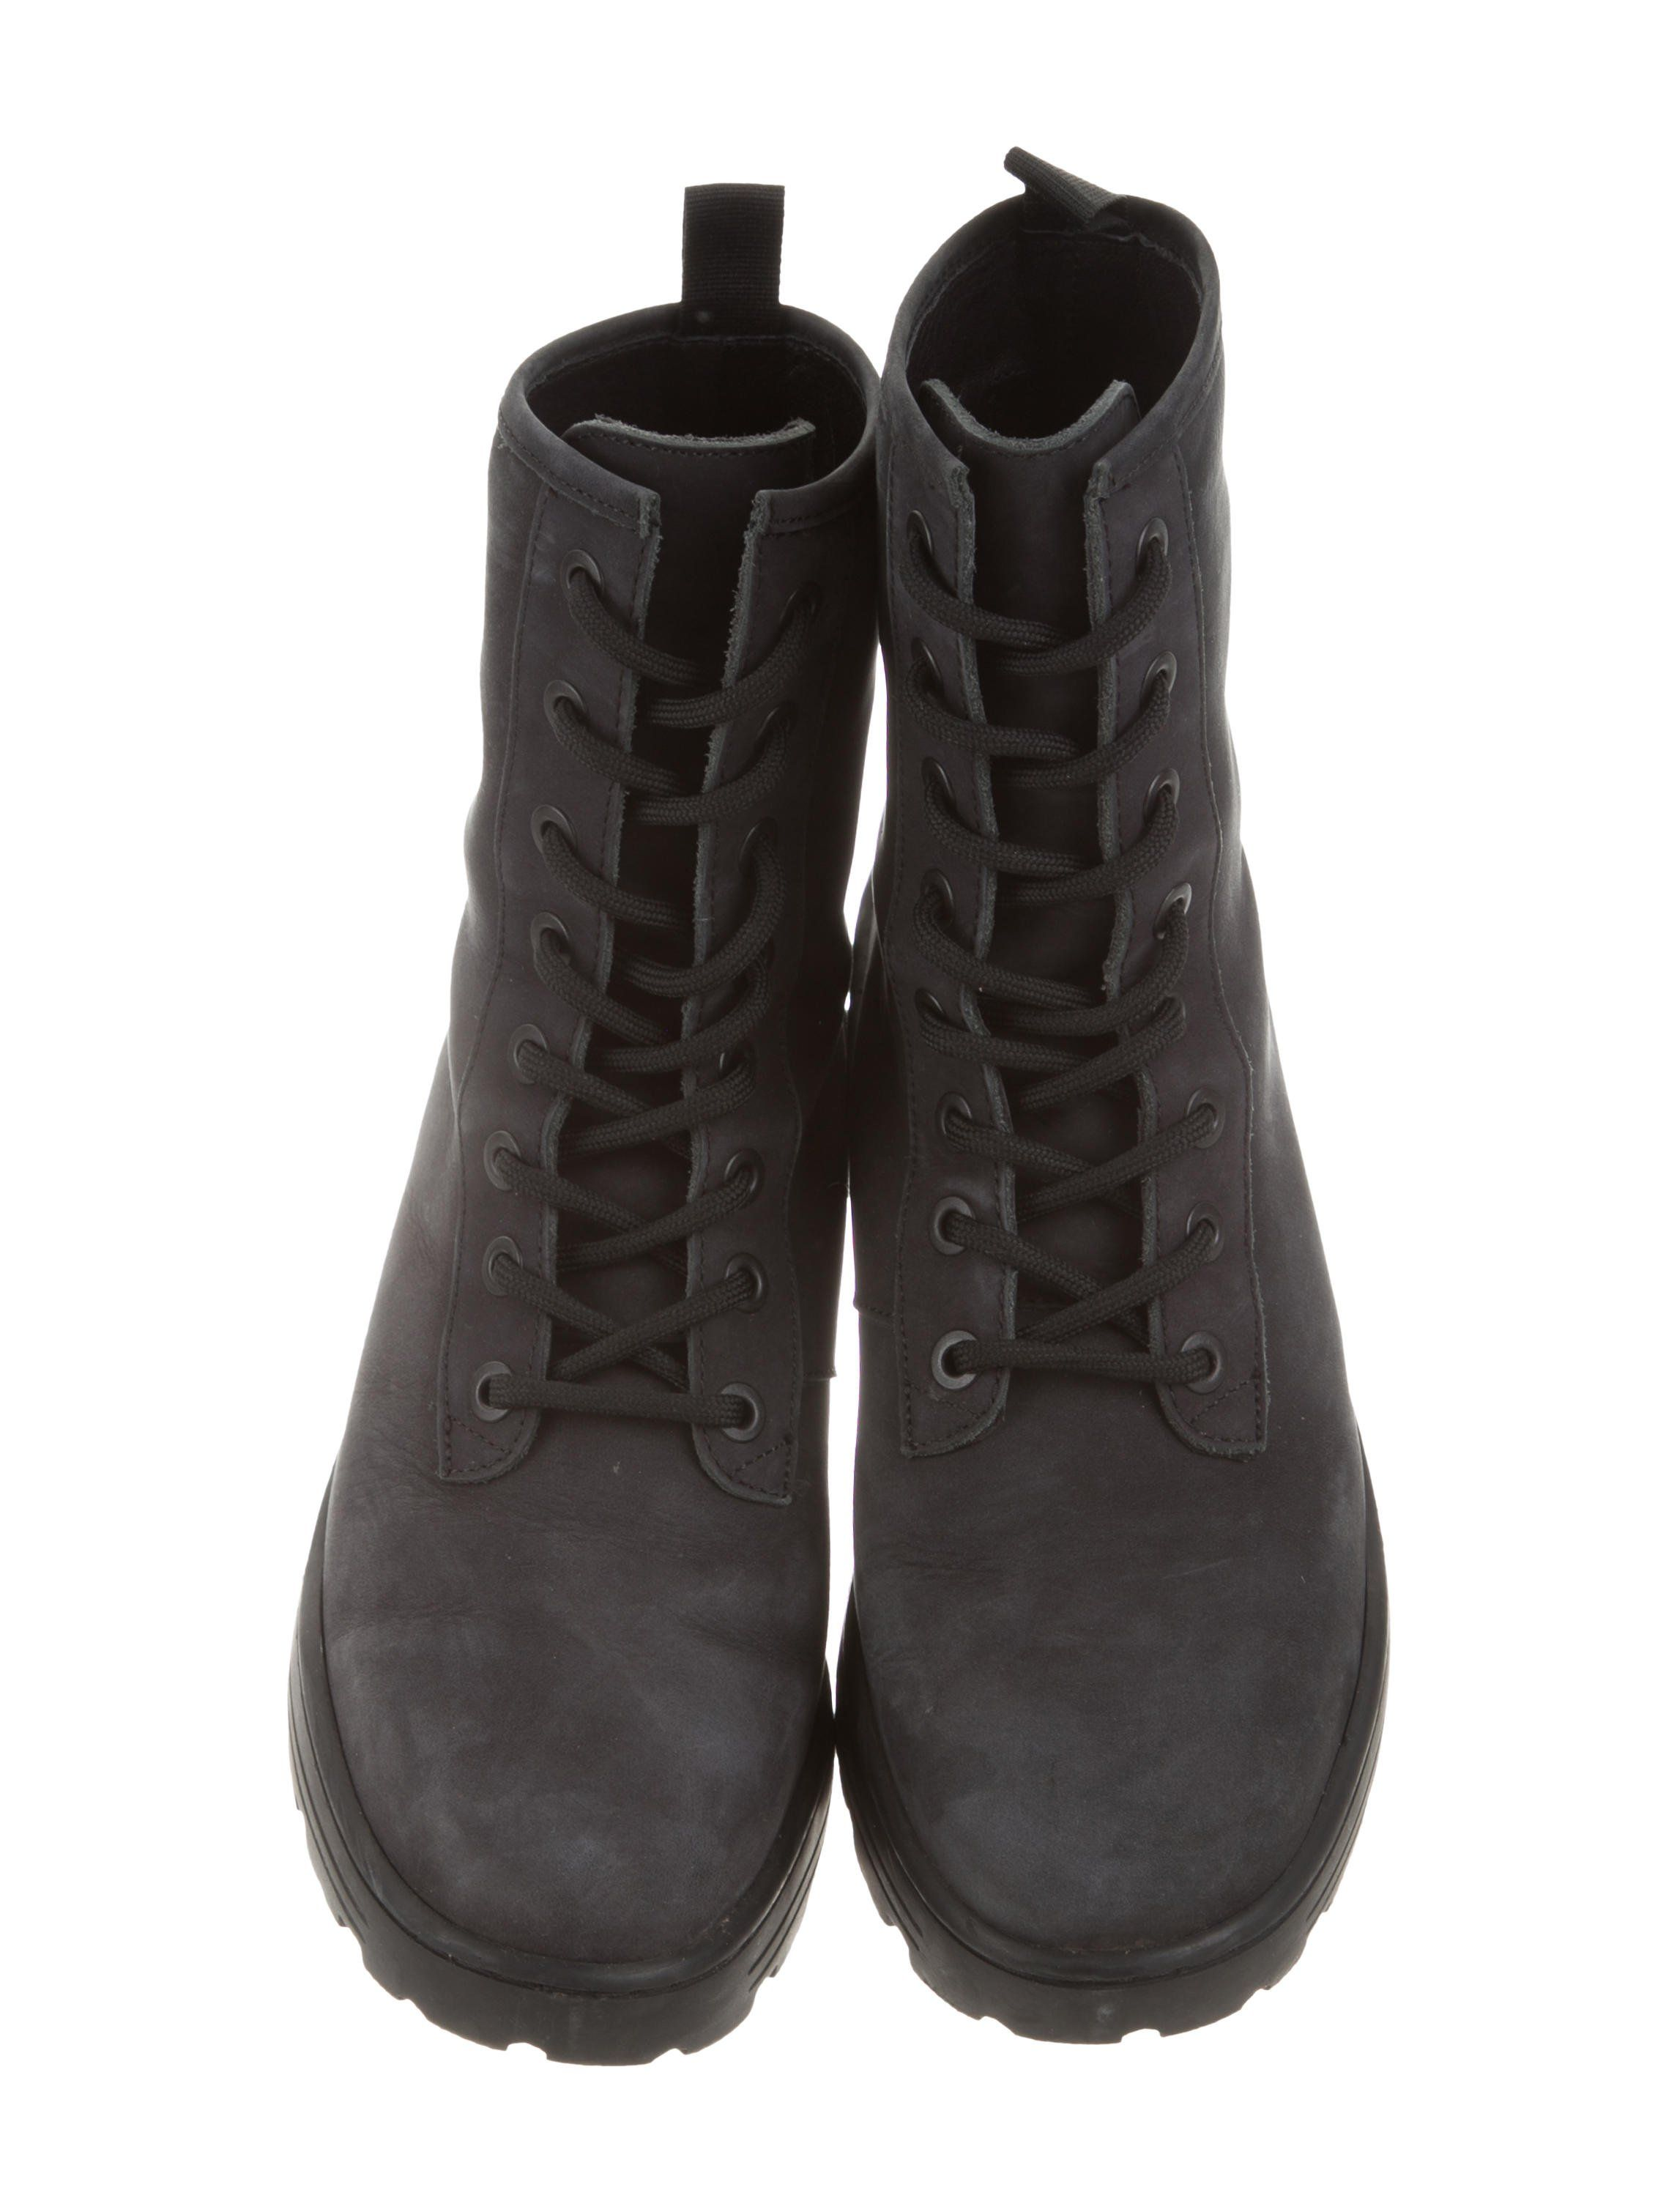 cbeee8b61980f From the Season 5 Collection. Men s graphite nubuck Yeezy round-toe  military boots with commando rubber soles and lace-tie closures at uppers.